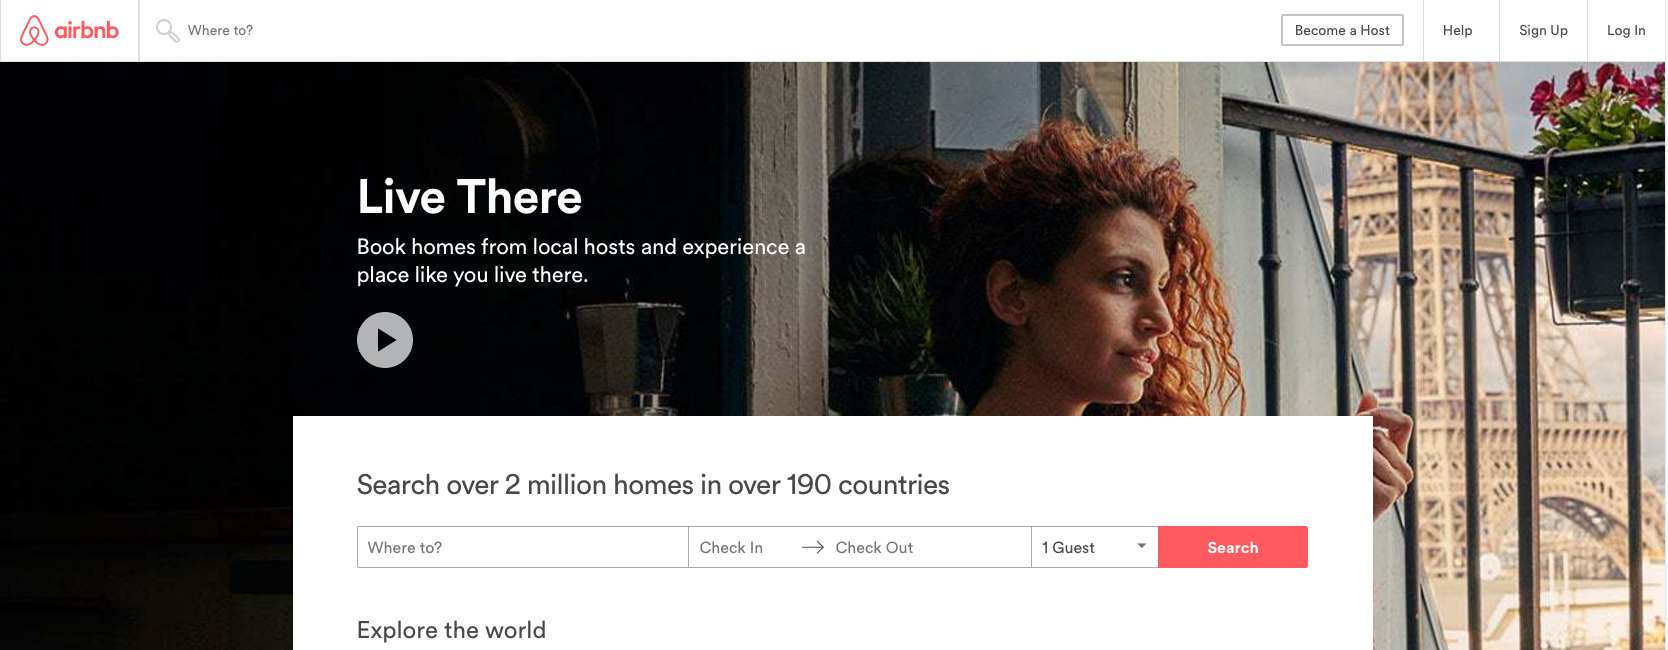 Airbnb UX